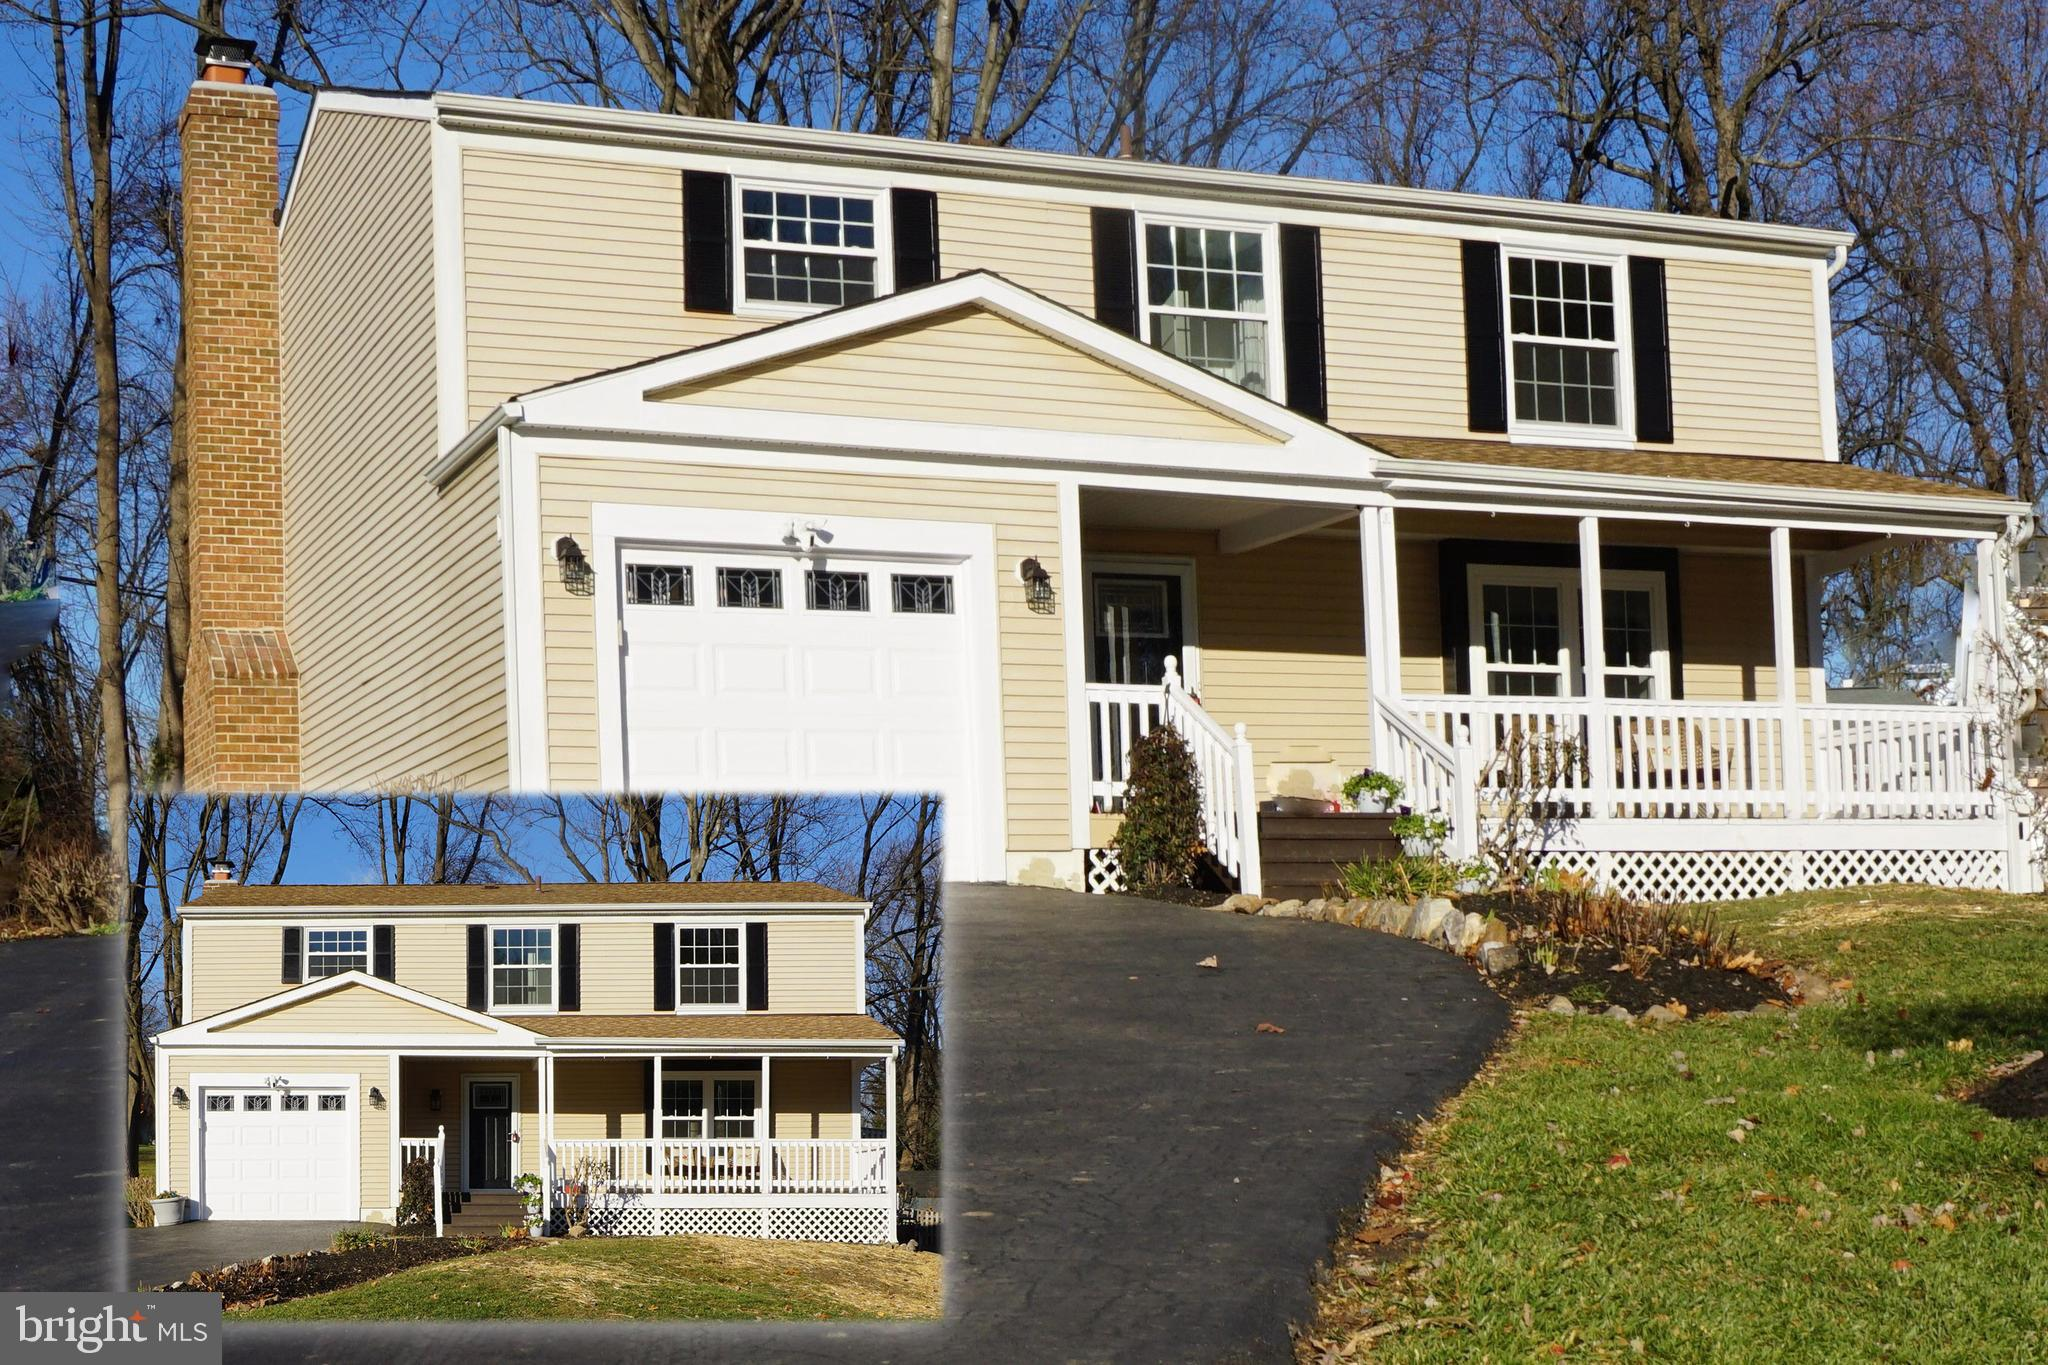 ***HOWARD COUNTY BEAUTY***TURN KEY HOME COMPLETELY RENOVATED & EQUIPPED WITH RING FLOODLIGHT CAMERA/